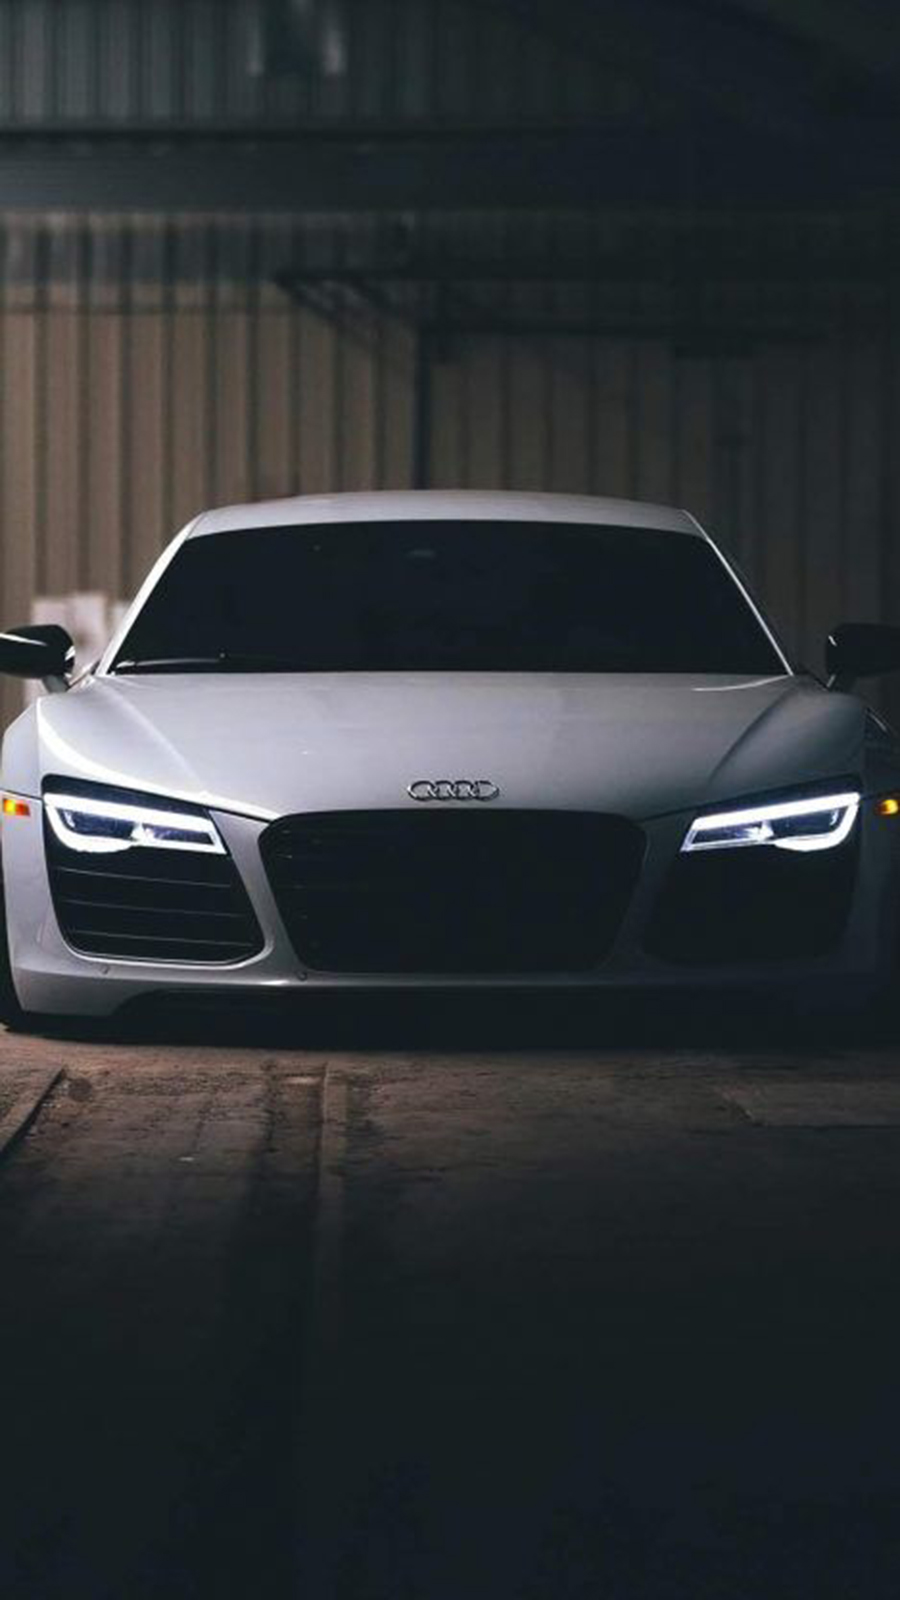 Audi-r8-White-iPhone-Wallpaper-iPhone-Wallpapers